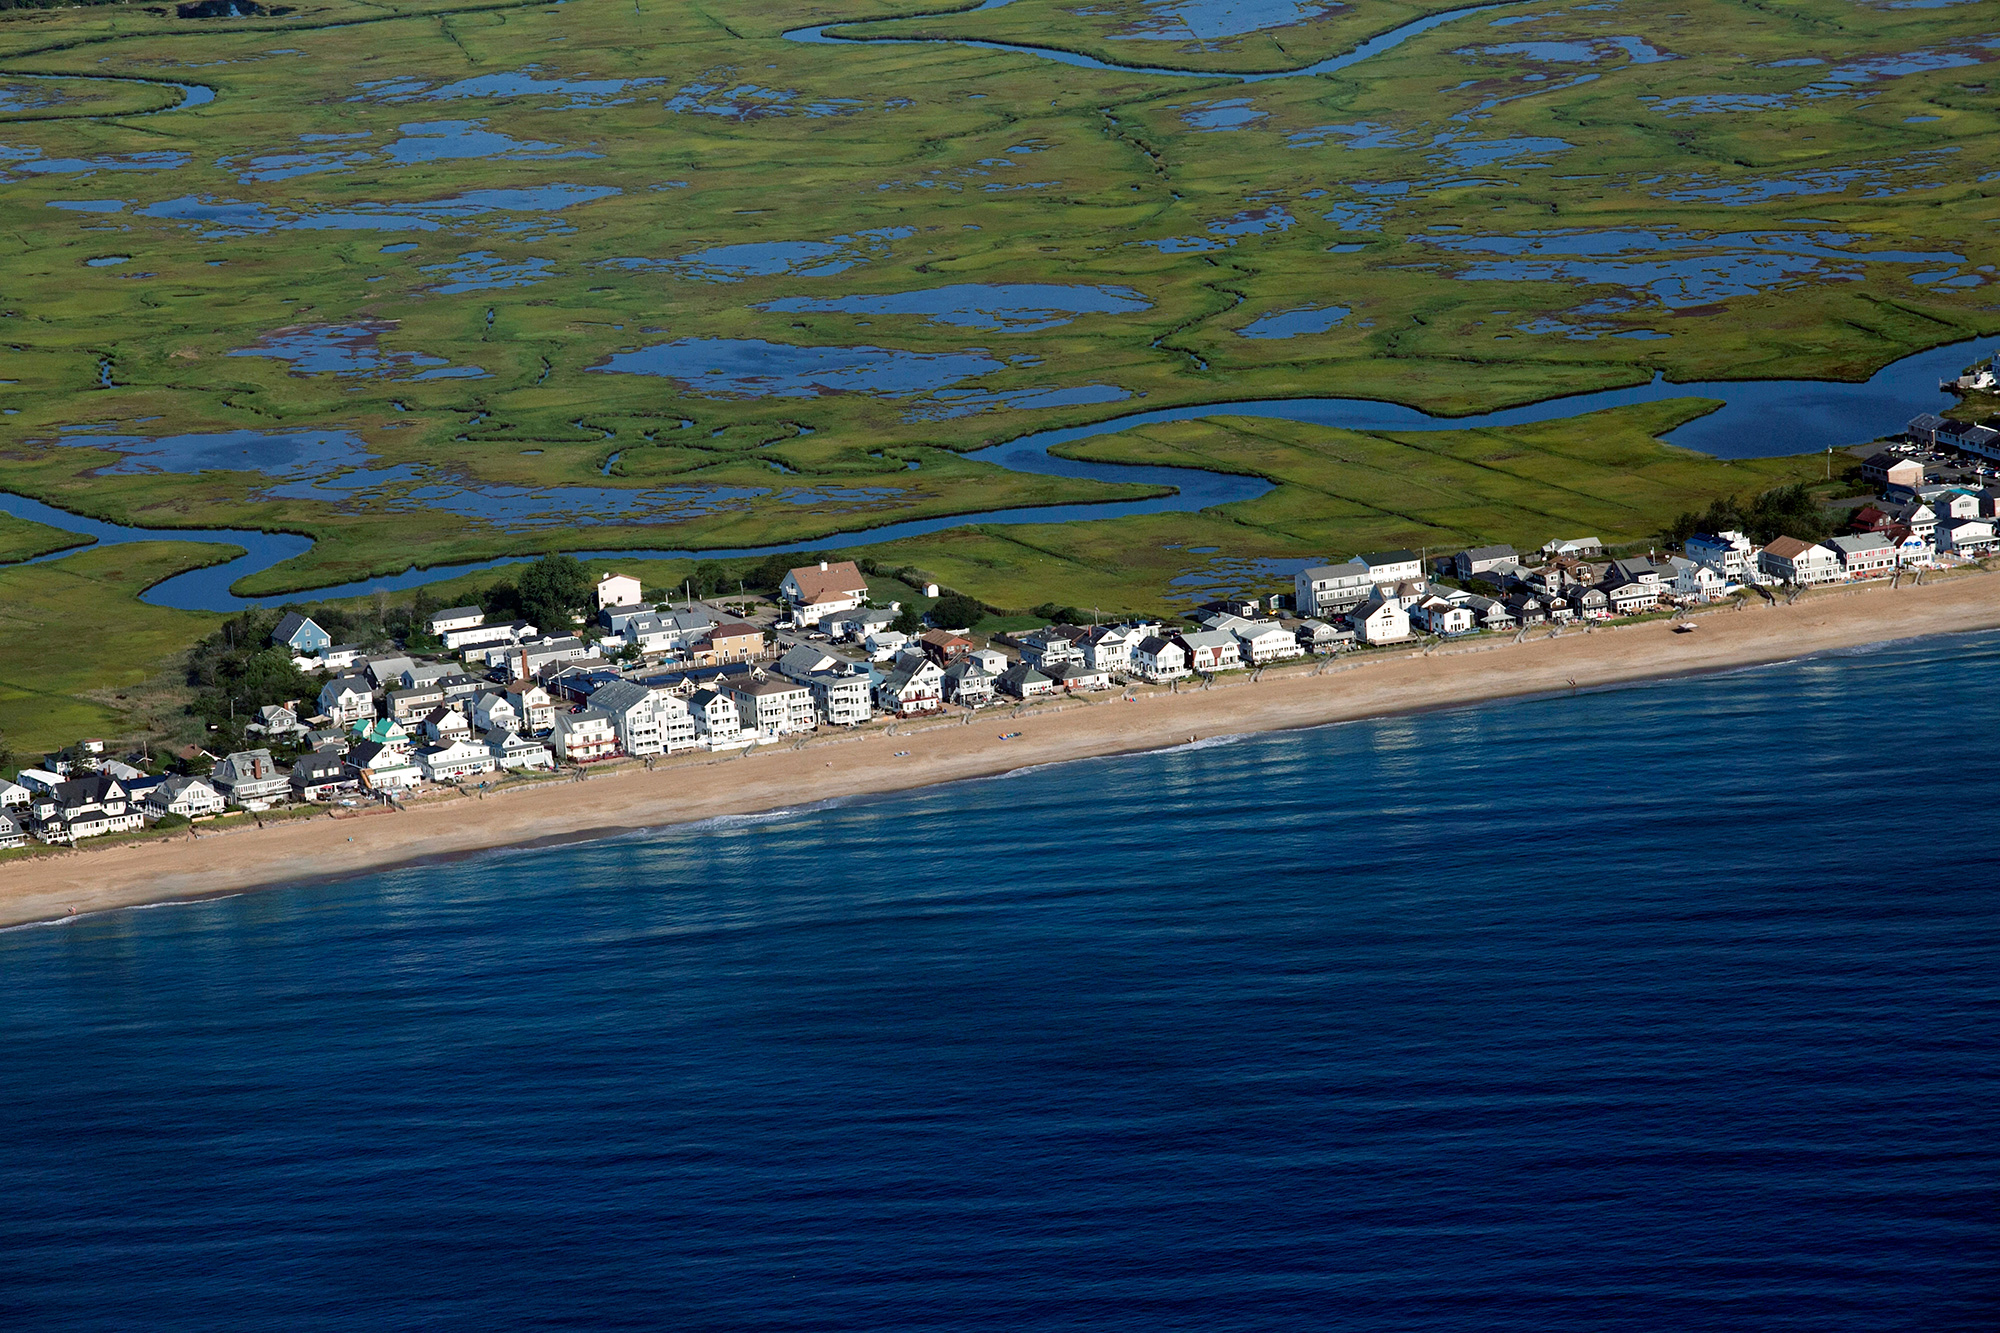 Homes along Salisbury Beach in Massachusetts and neighboring Hampton Beach in New Hampshire  face the Atlantic Ocean and are backed by miles of marsh. As sea level rise elevates the water table, flooding can come from the marsh instead of the ocean. (Photo by Lauren Owens Lambert/GroundTruth)